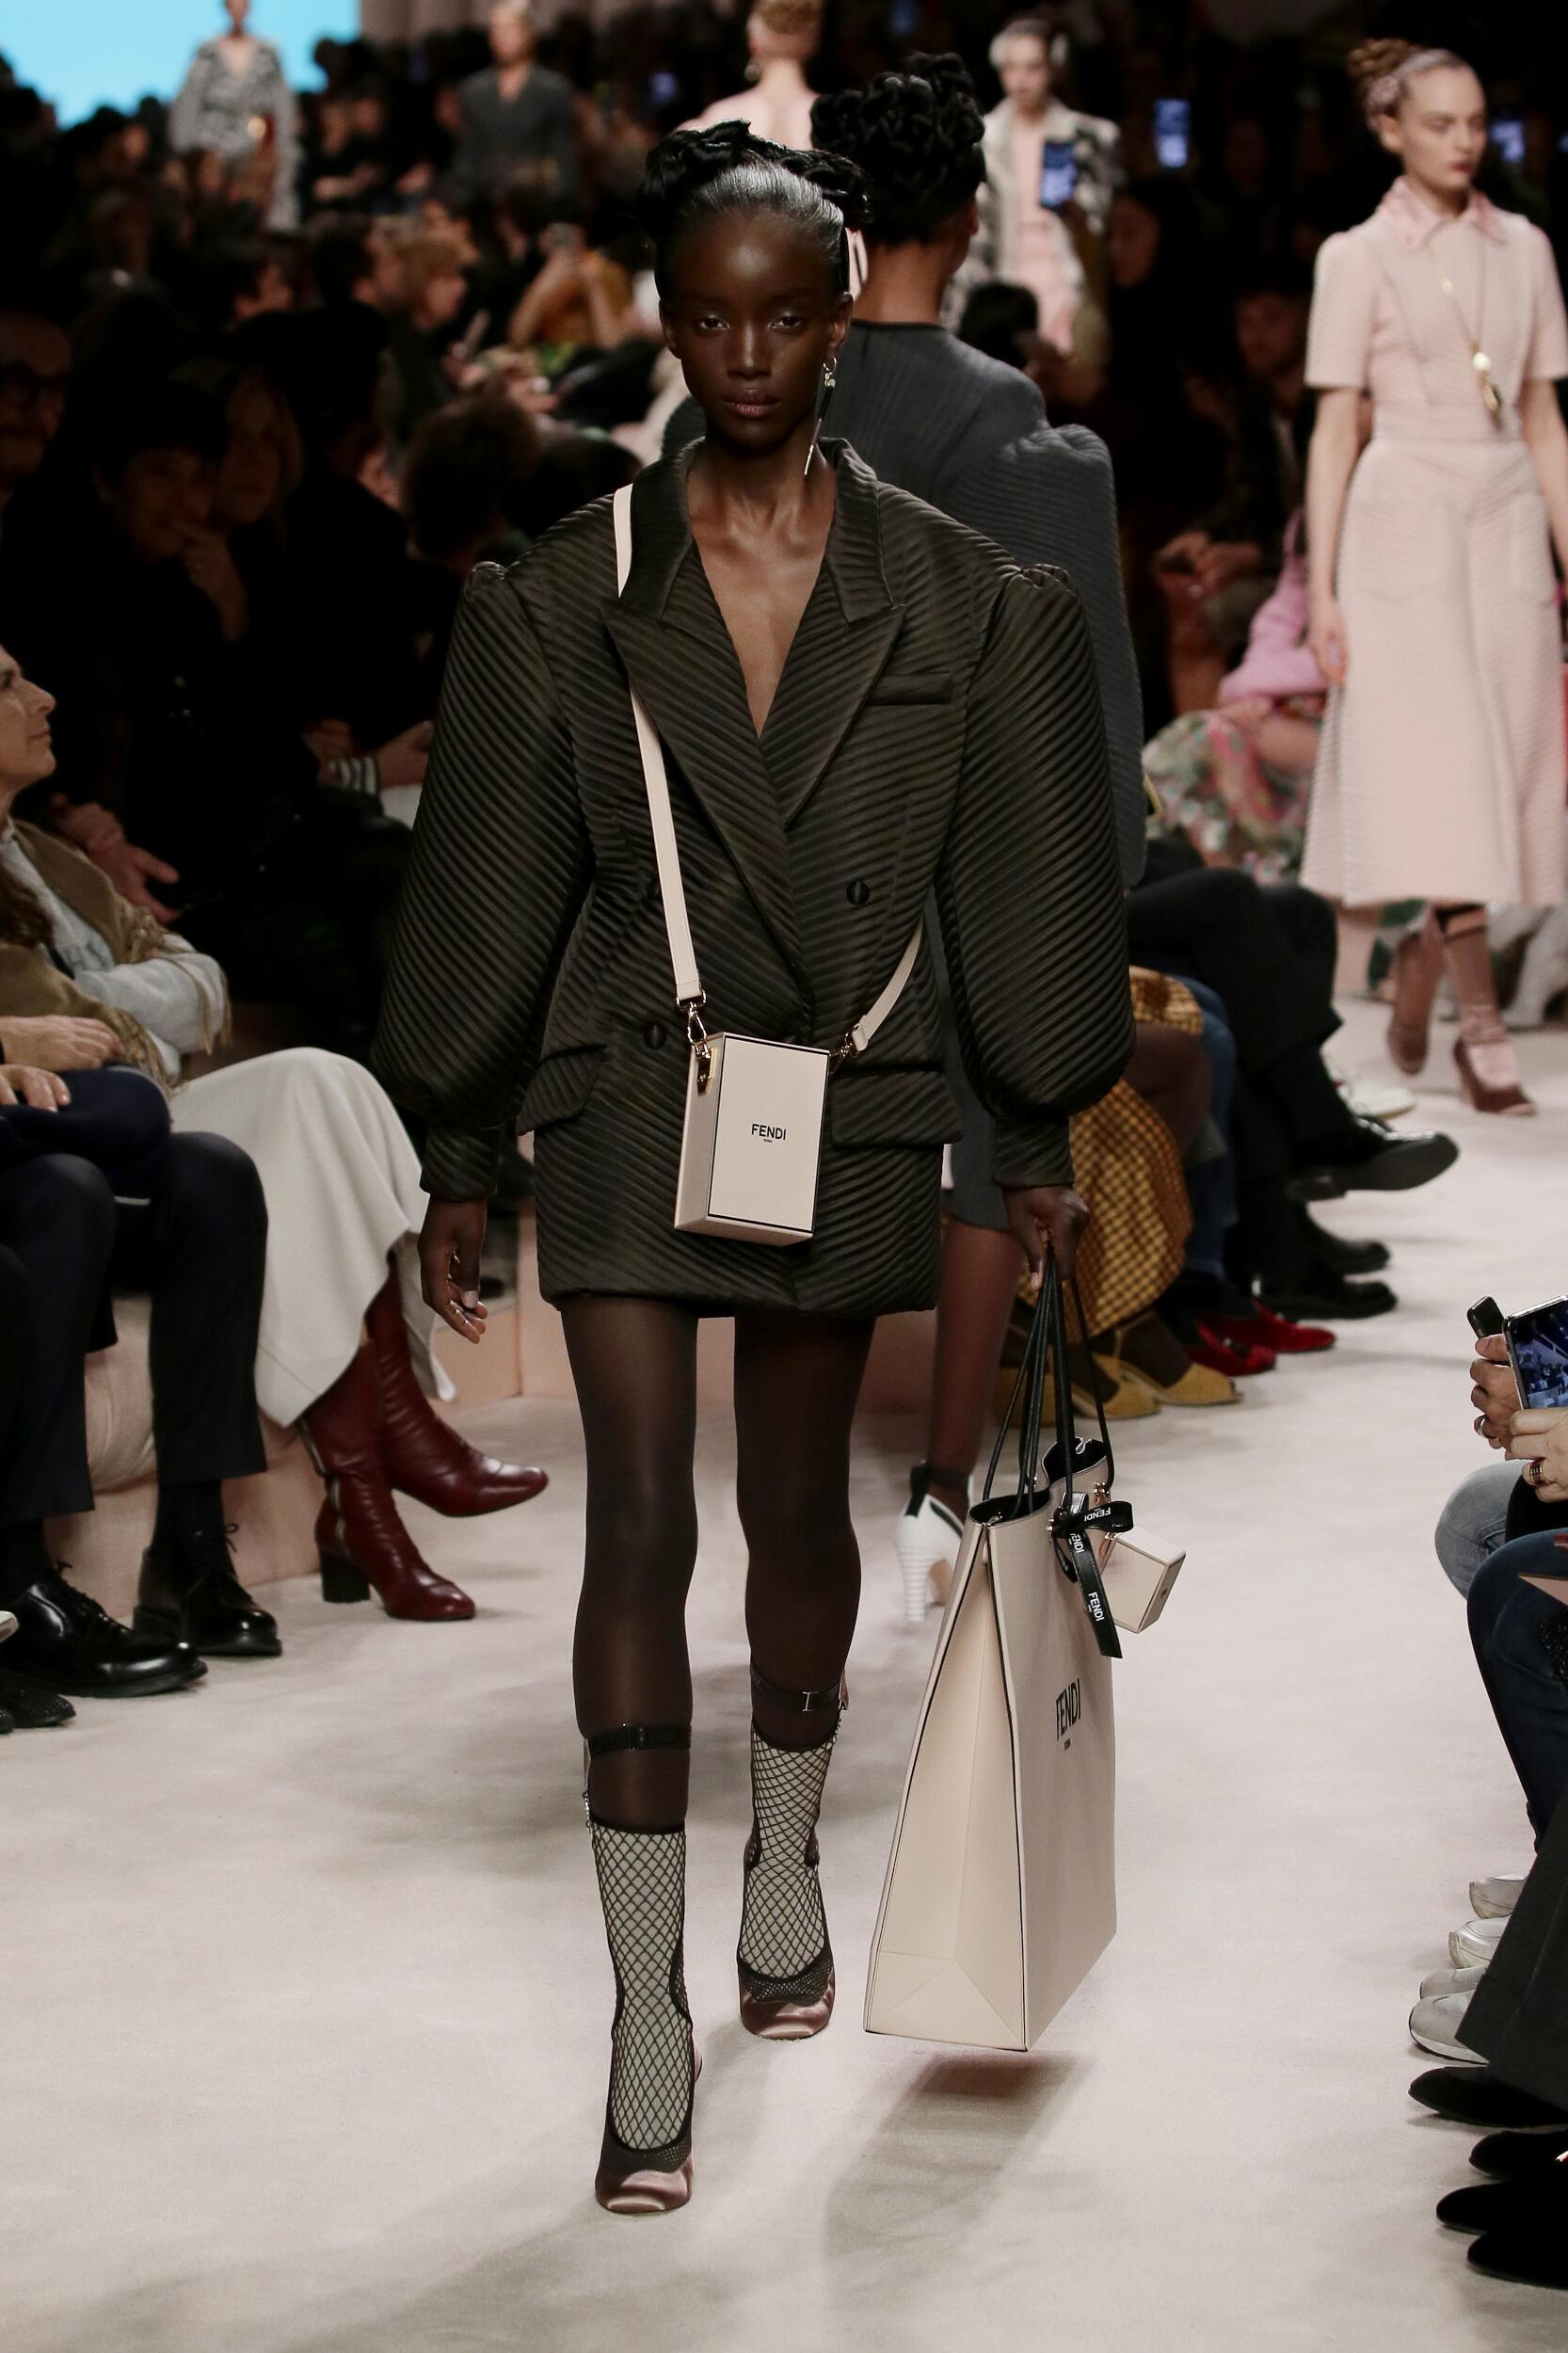 FW 2020-21 Fashion Show Fendi